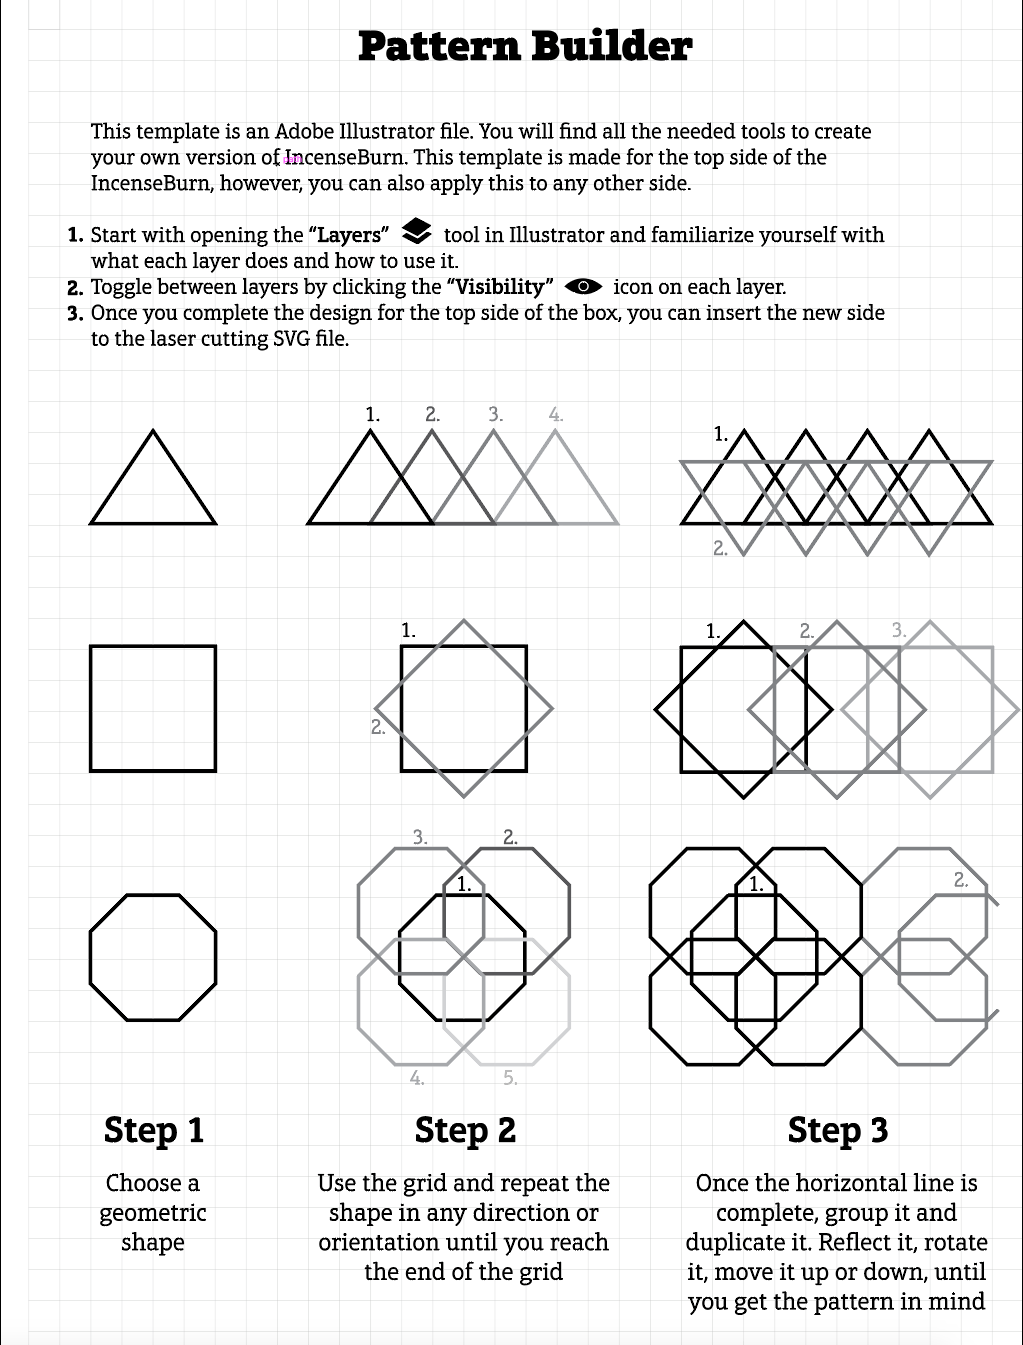 Pattern Builder - Instructions A